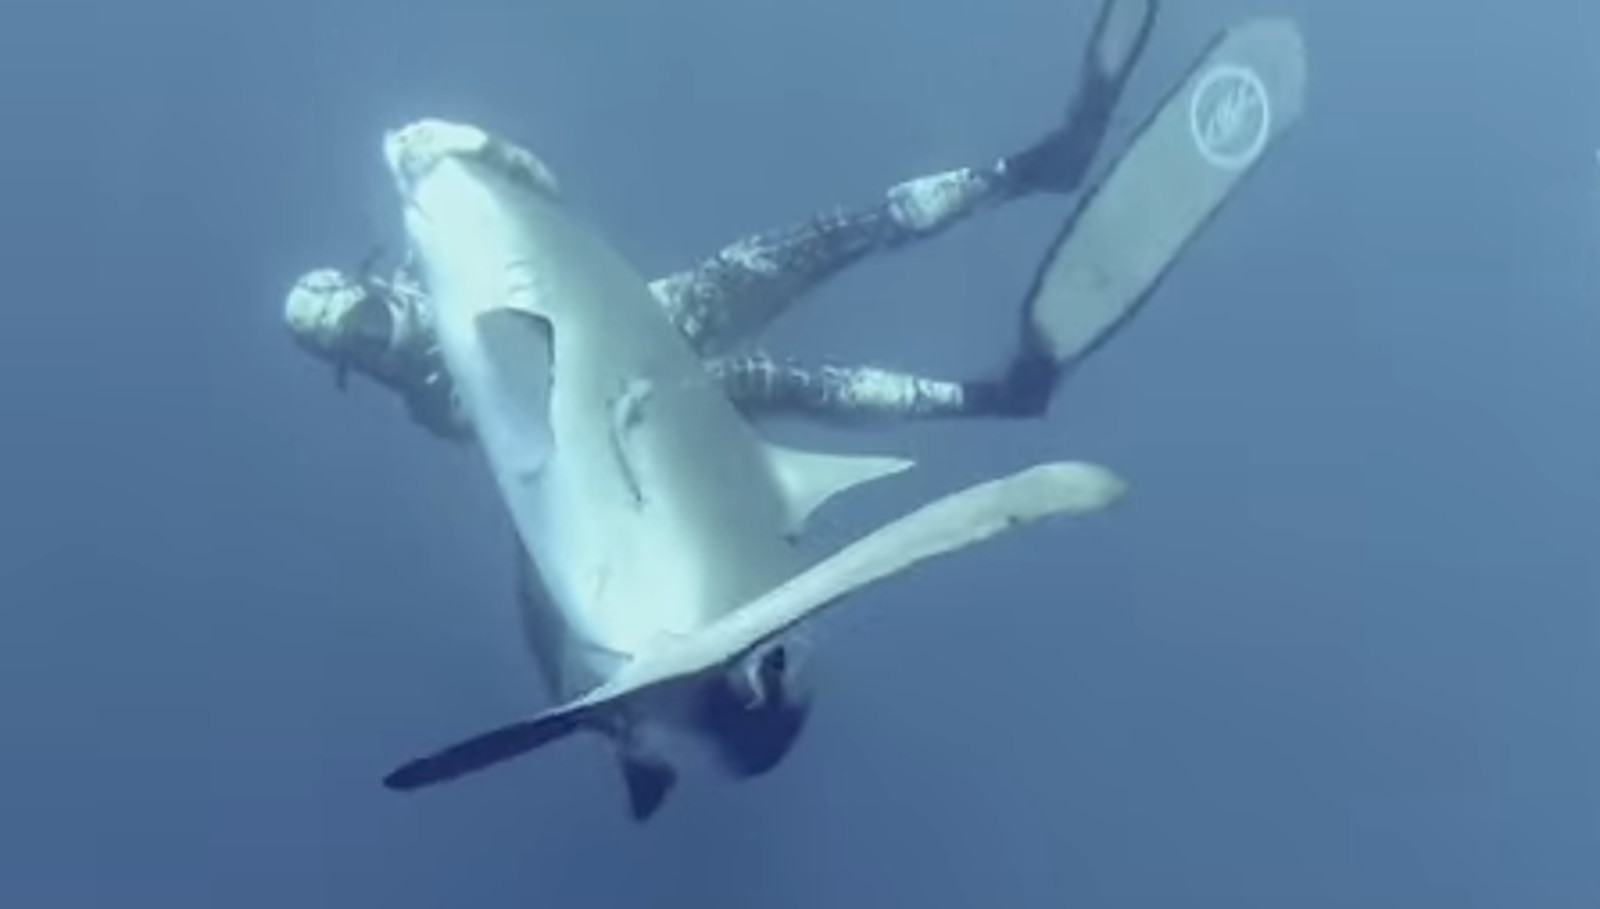 Brave Diver Removes Hook From Injured Shark's Mouth (VIDEO)